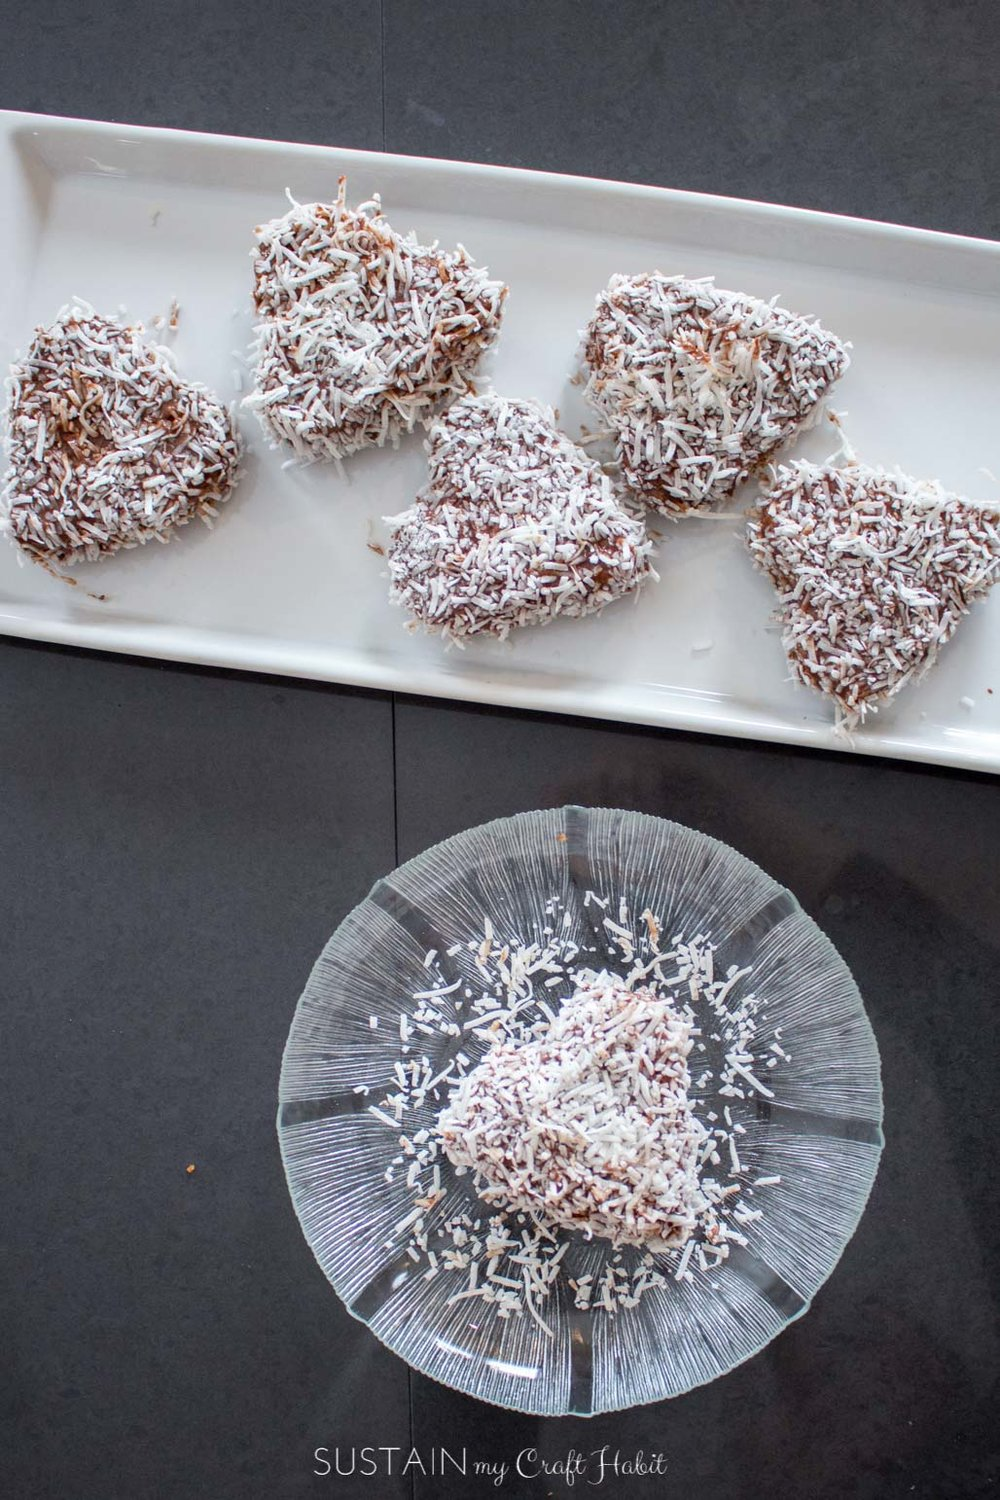 How sweet are these mini heart-shaped personal cakes? Very simple recipe with chocolate and coconut. Easy homemade dessert ideas: great for a potluck, shower or wedding sweets table.